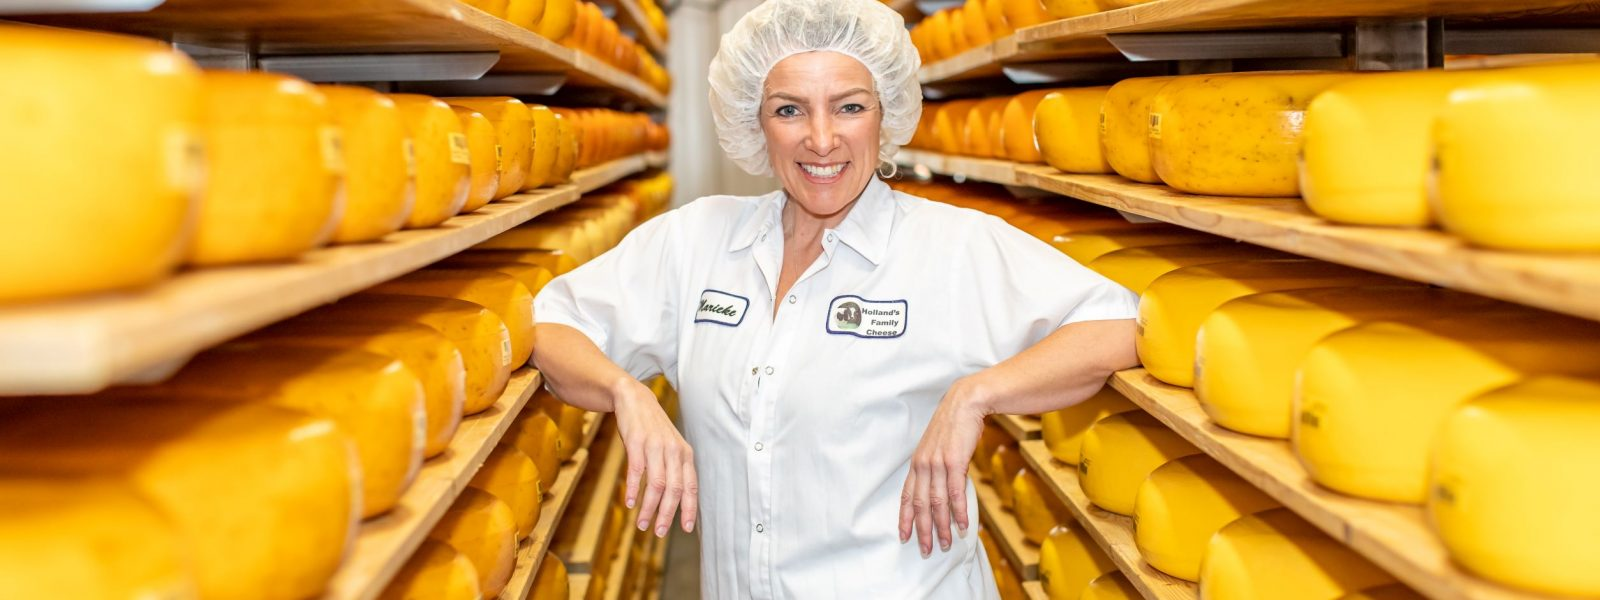 woman grinning surrounded by bright orange wheels of aging cheese